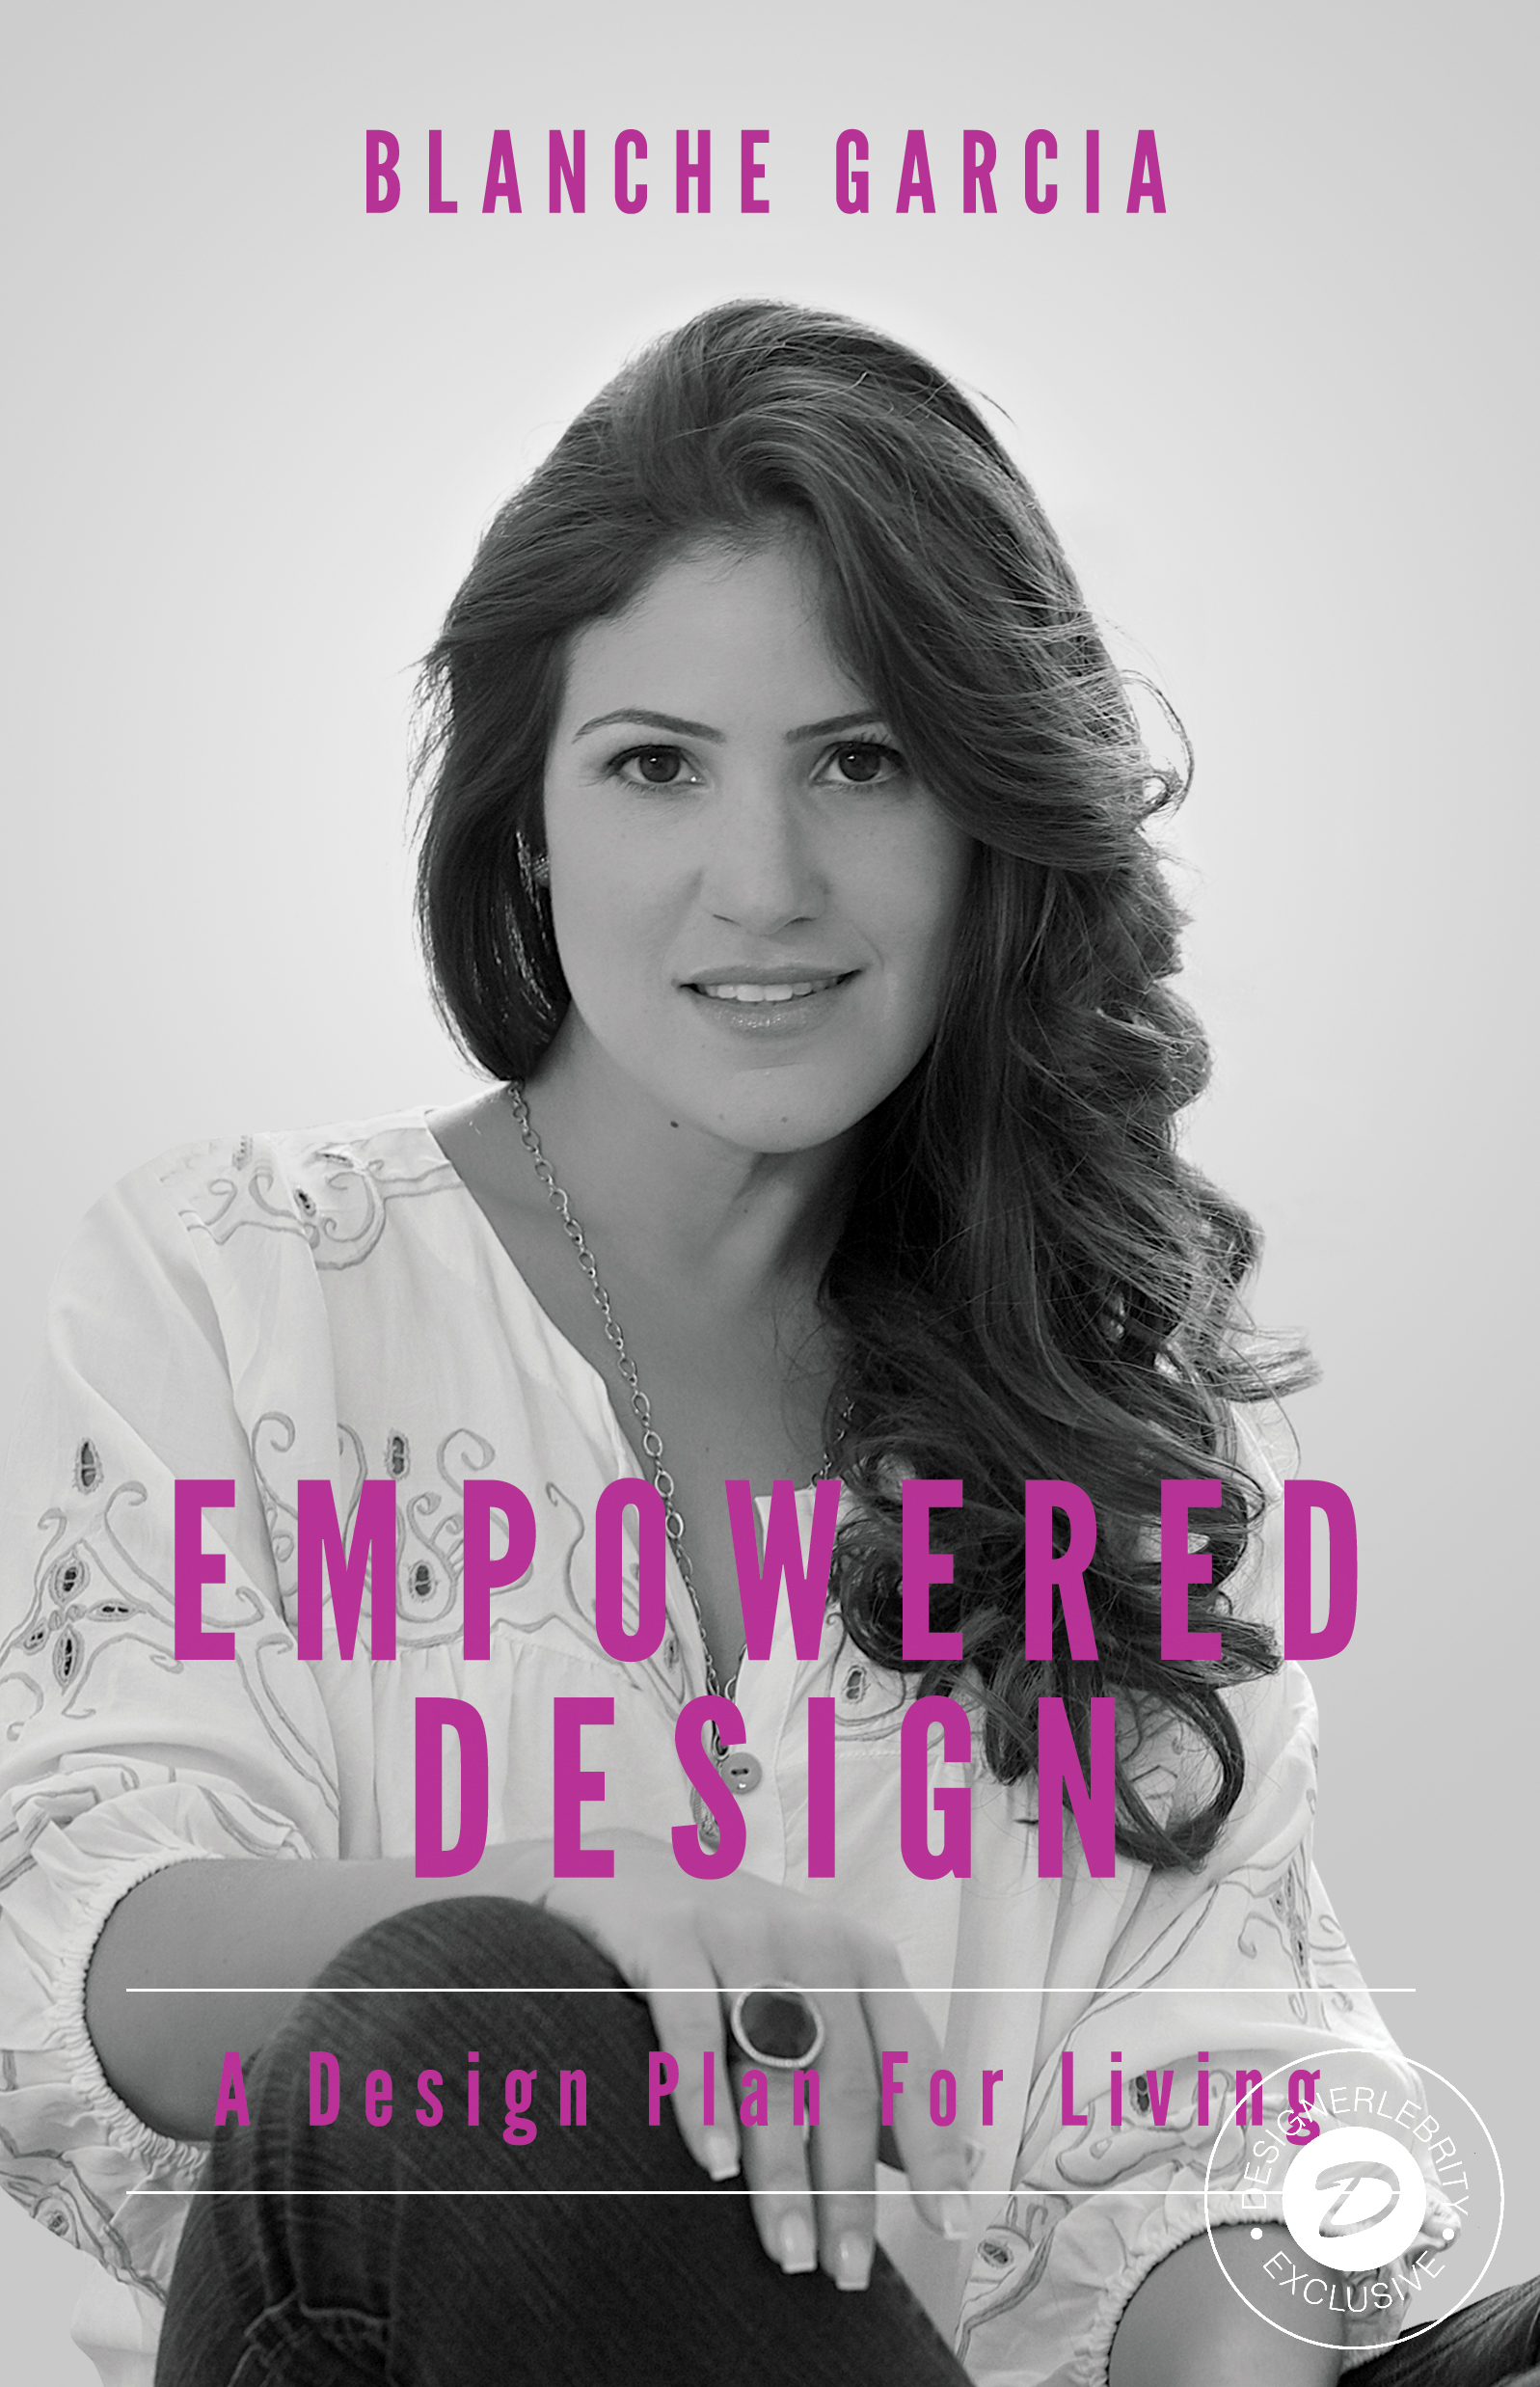 DESIGNERLEBRITY EXCLUSIVE FIRST LOOK:    EMPOWERED DESIGN   , A Design Plan For Living by Blanche Garcia